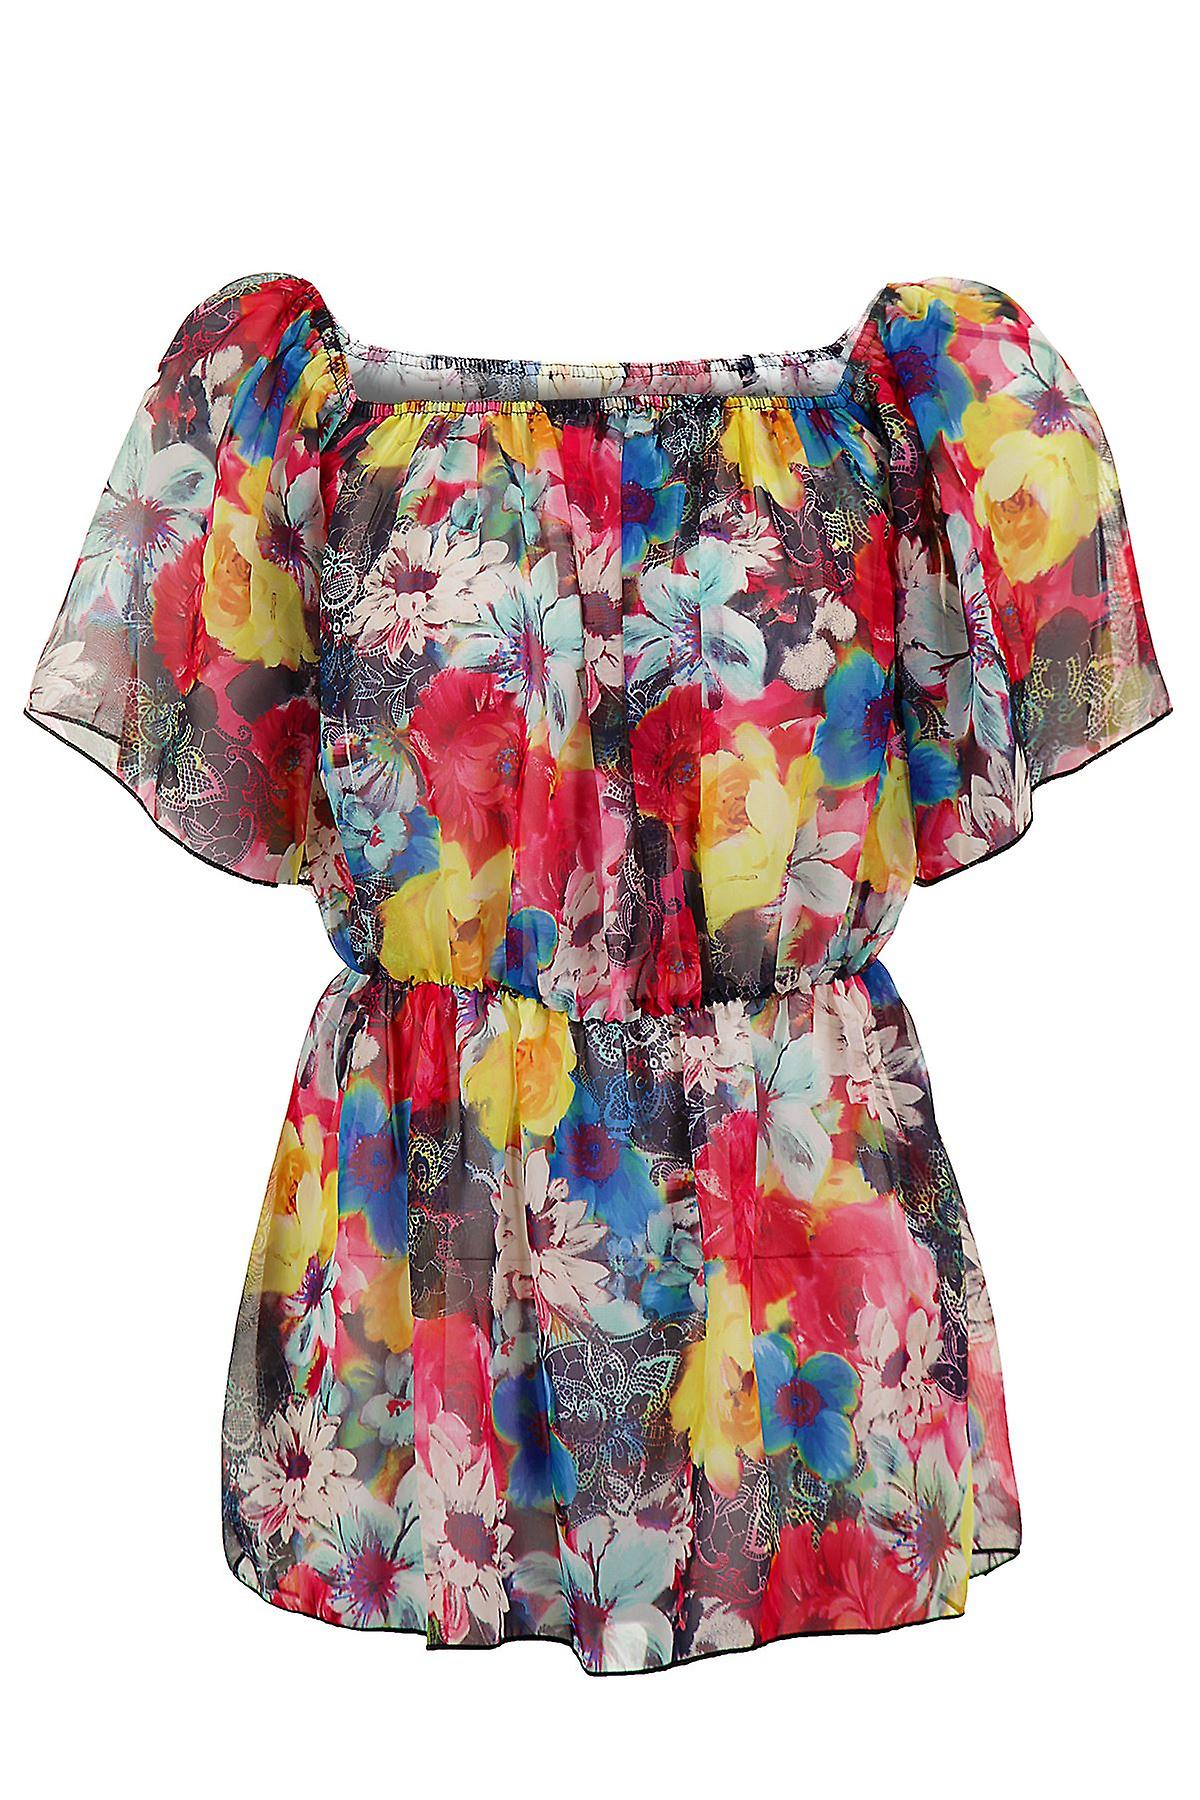 Ladies Short Sleeve See-Through Floral Print Summer Gypsy Women's Top